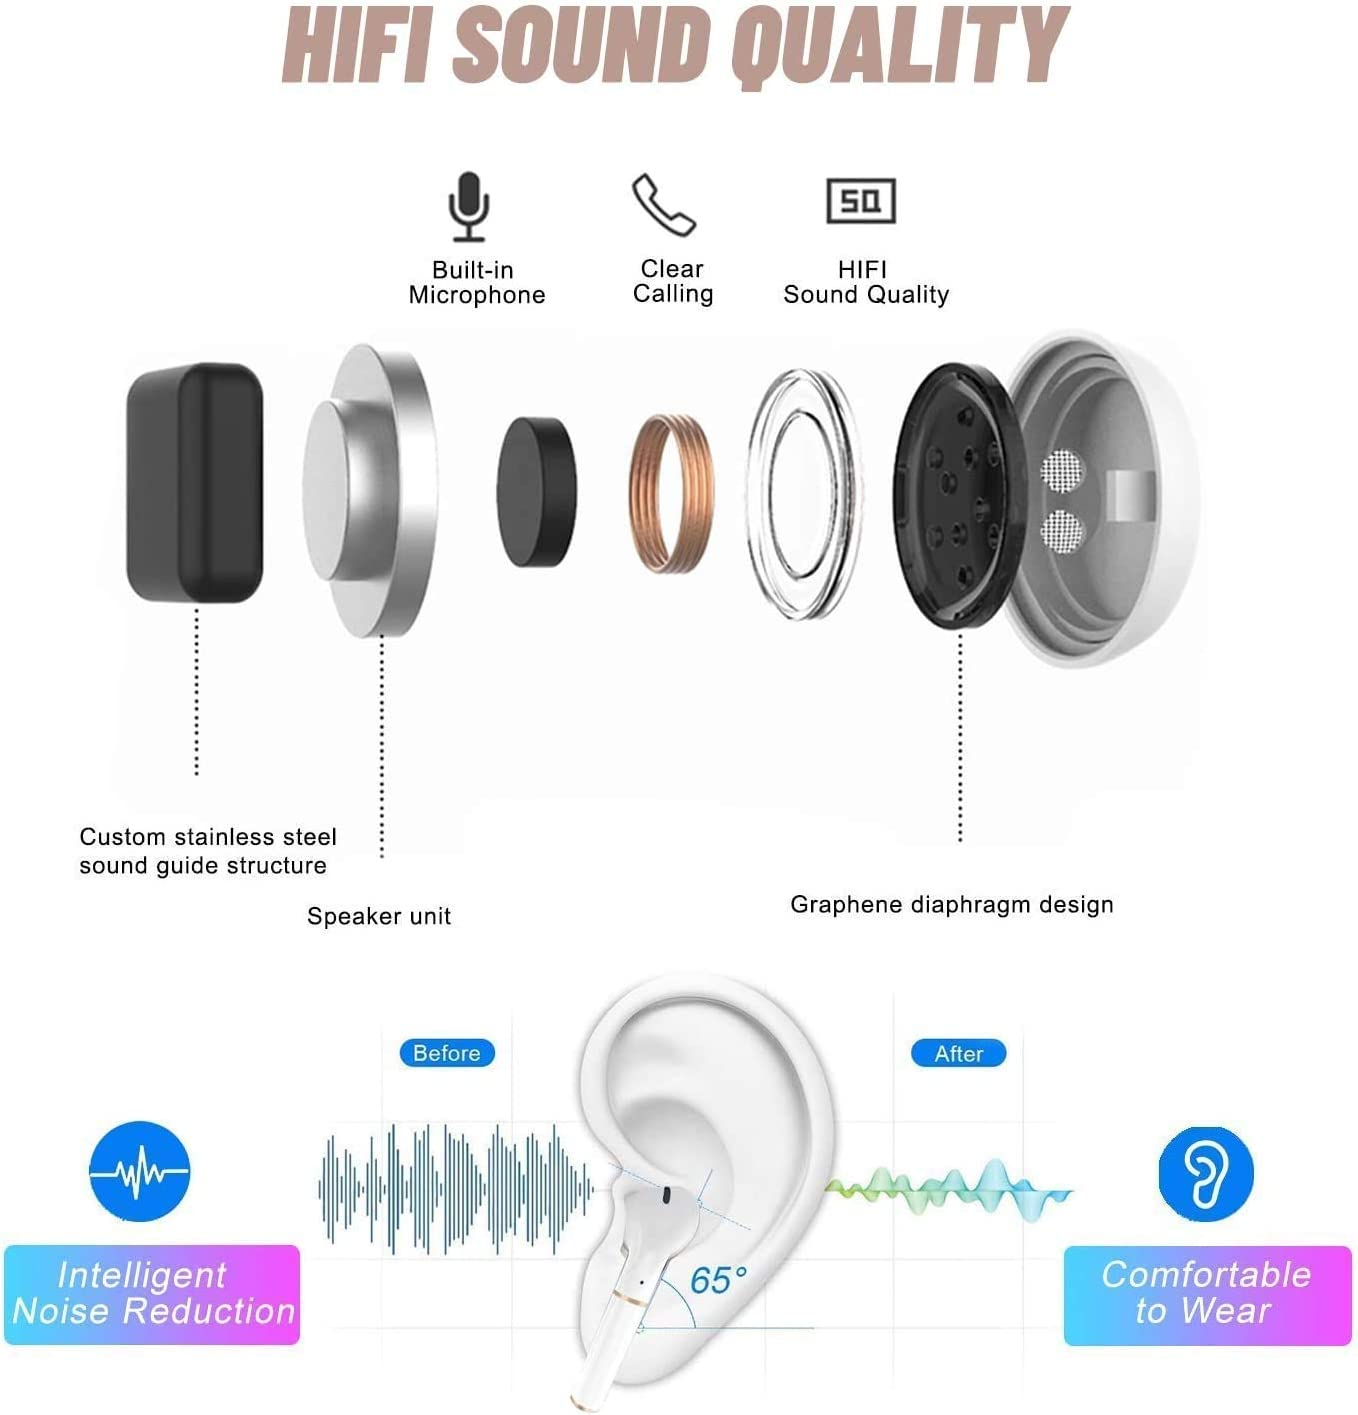 Bluetooth 5.0 Wireless Earbuds Waterproof TWS Stereo Bluetooth Headphones Built in Mic in Ear Bluetooth Earbuds Premium Sound with Deep Bass for Sport